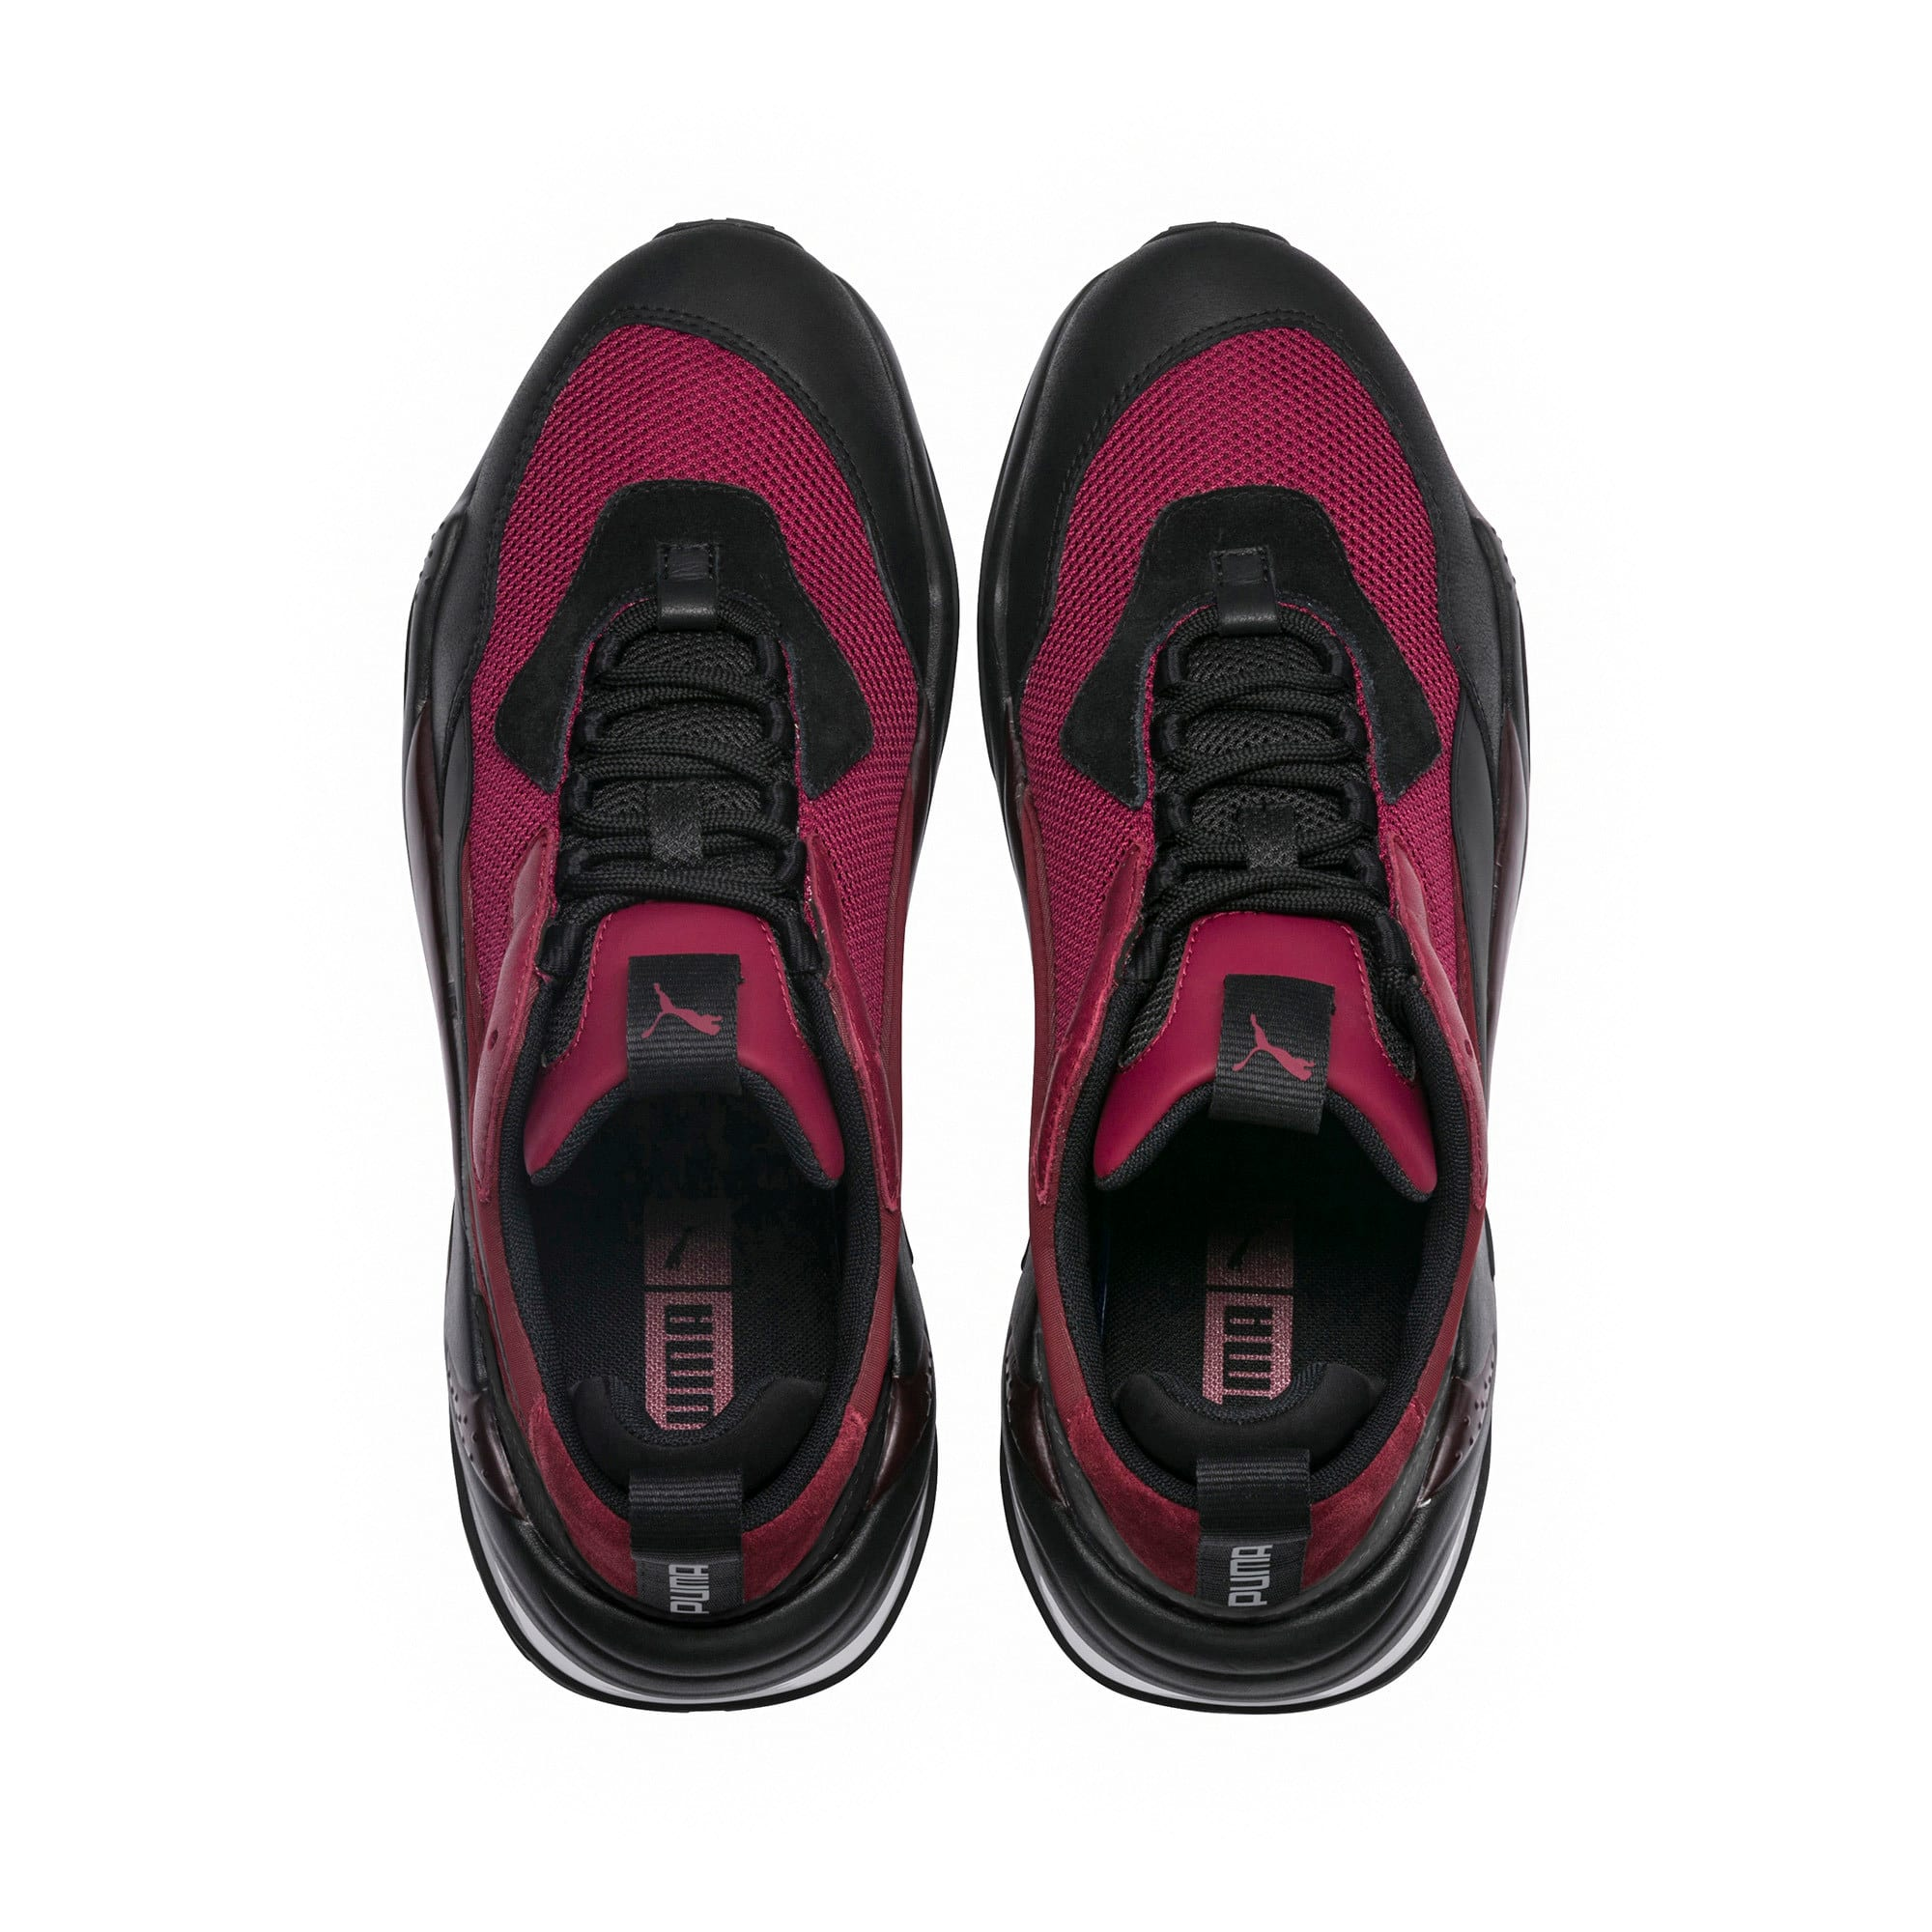 Thumbnail 5 of Thunder Spectra Sneakers, Rhododendron-P Black-T Port, medium